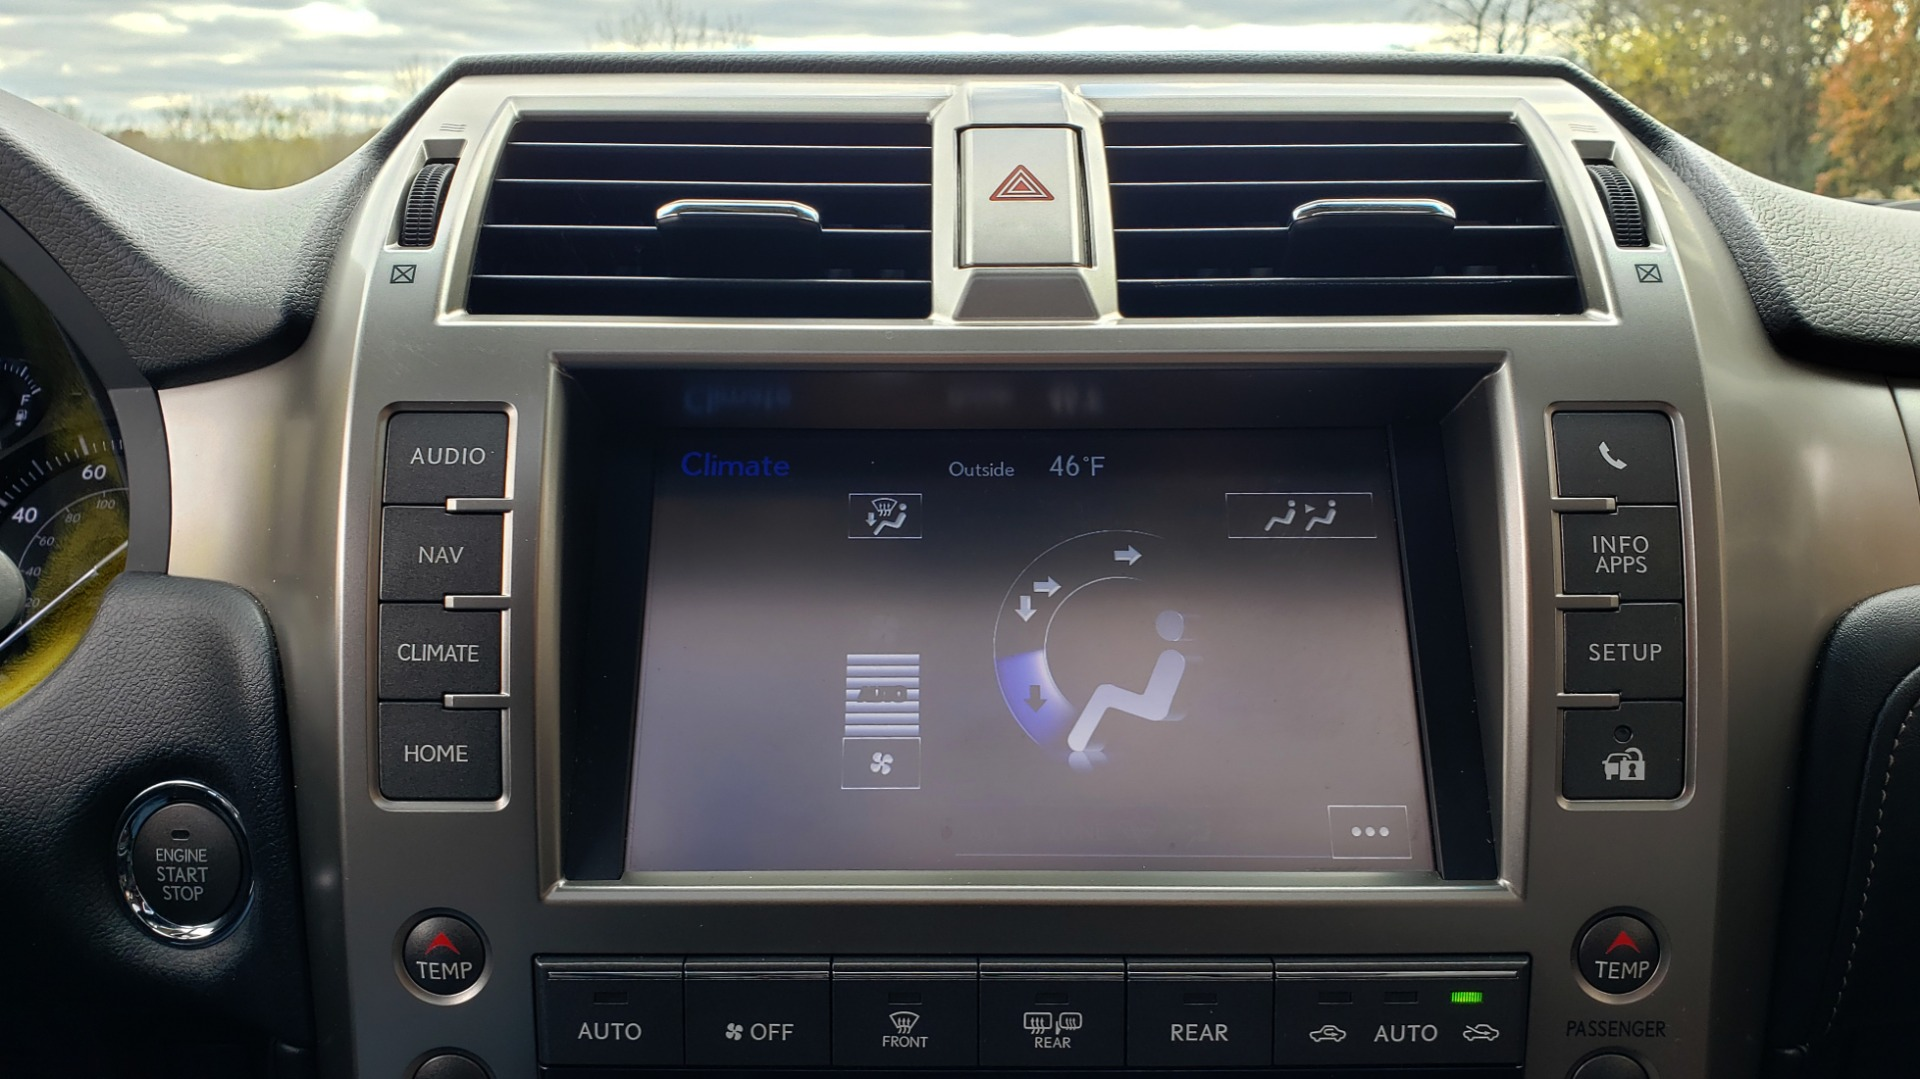 Used 2017 Lexus GX 460 PREMIUM / 4WD / NAV / SUNROOF / 3-ROW / BSM / REARVIEW for sale $34,995 at Formula Imports in Charlotte NC 28227 48